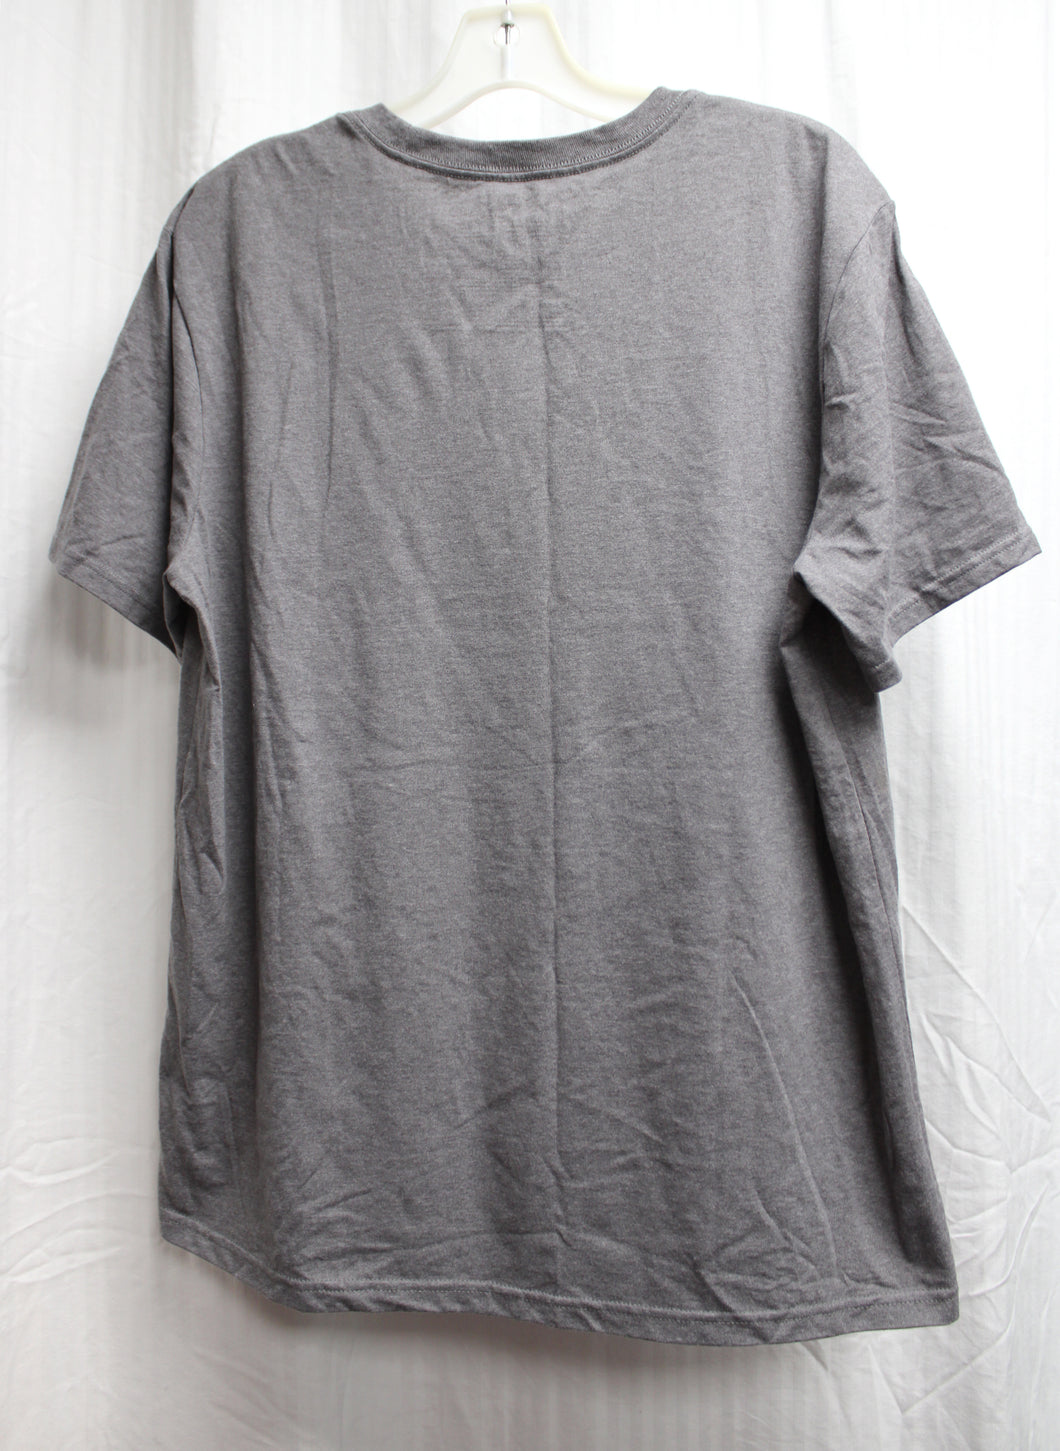 Men's Vintage 1960's Kamawhanee Made in Japan HAwaiian Print Shirt Hand Screen Printed